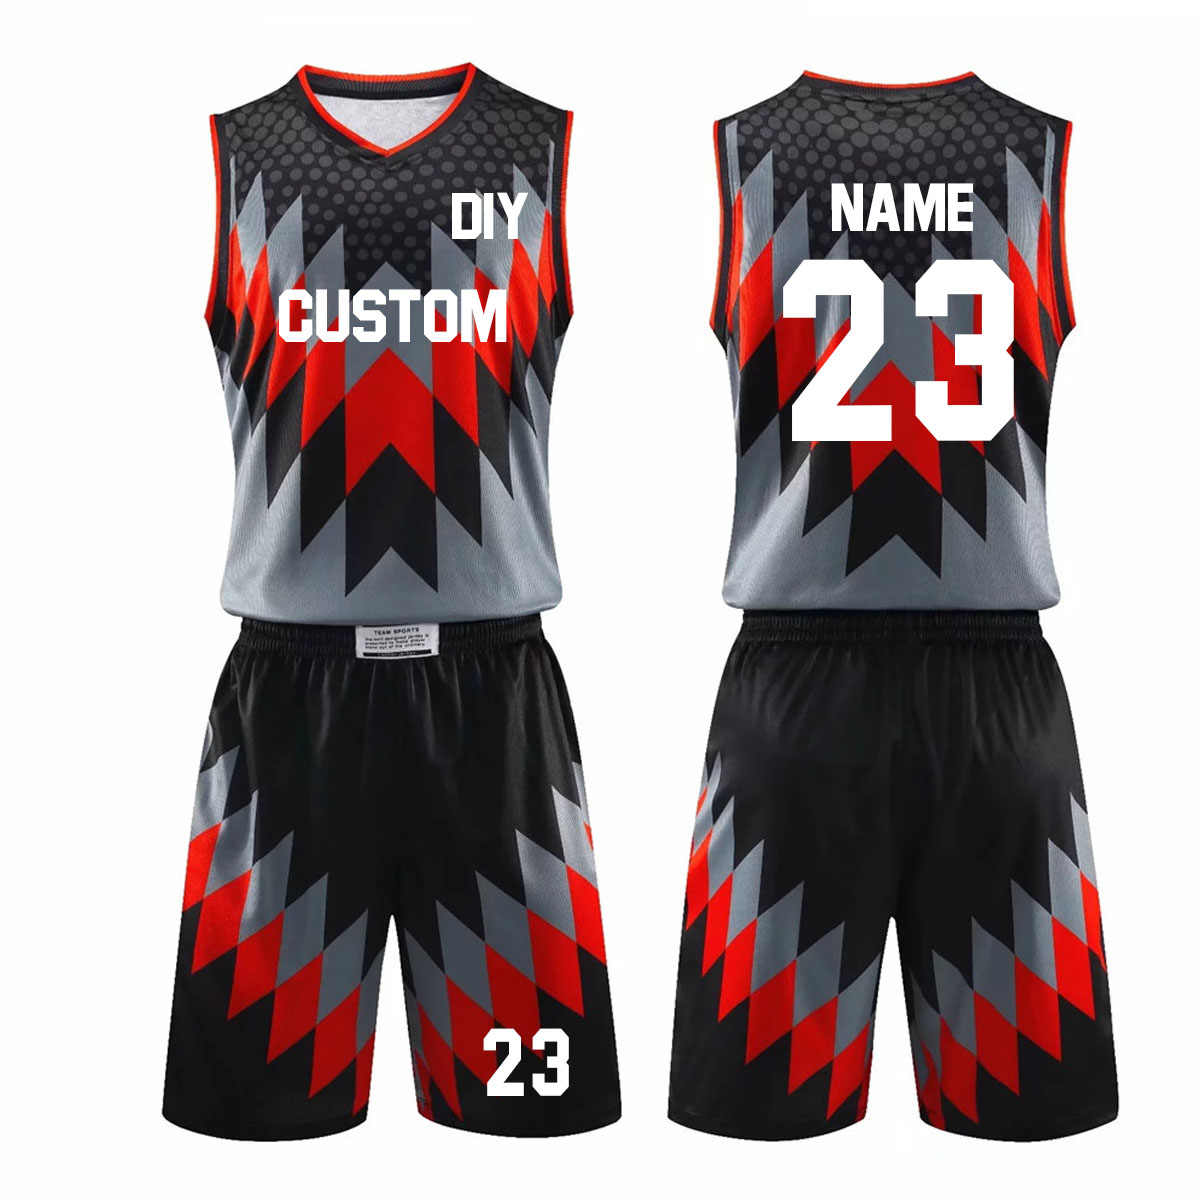 New Men Throwback Basketball Training Jersey Set Blank College Tracksuits Breathable Basketball Jerseys Uniforms Suit Customized